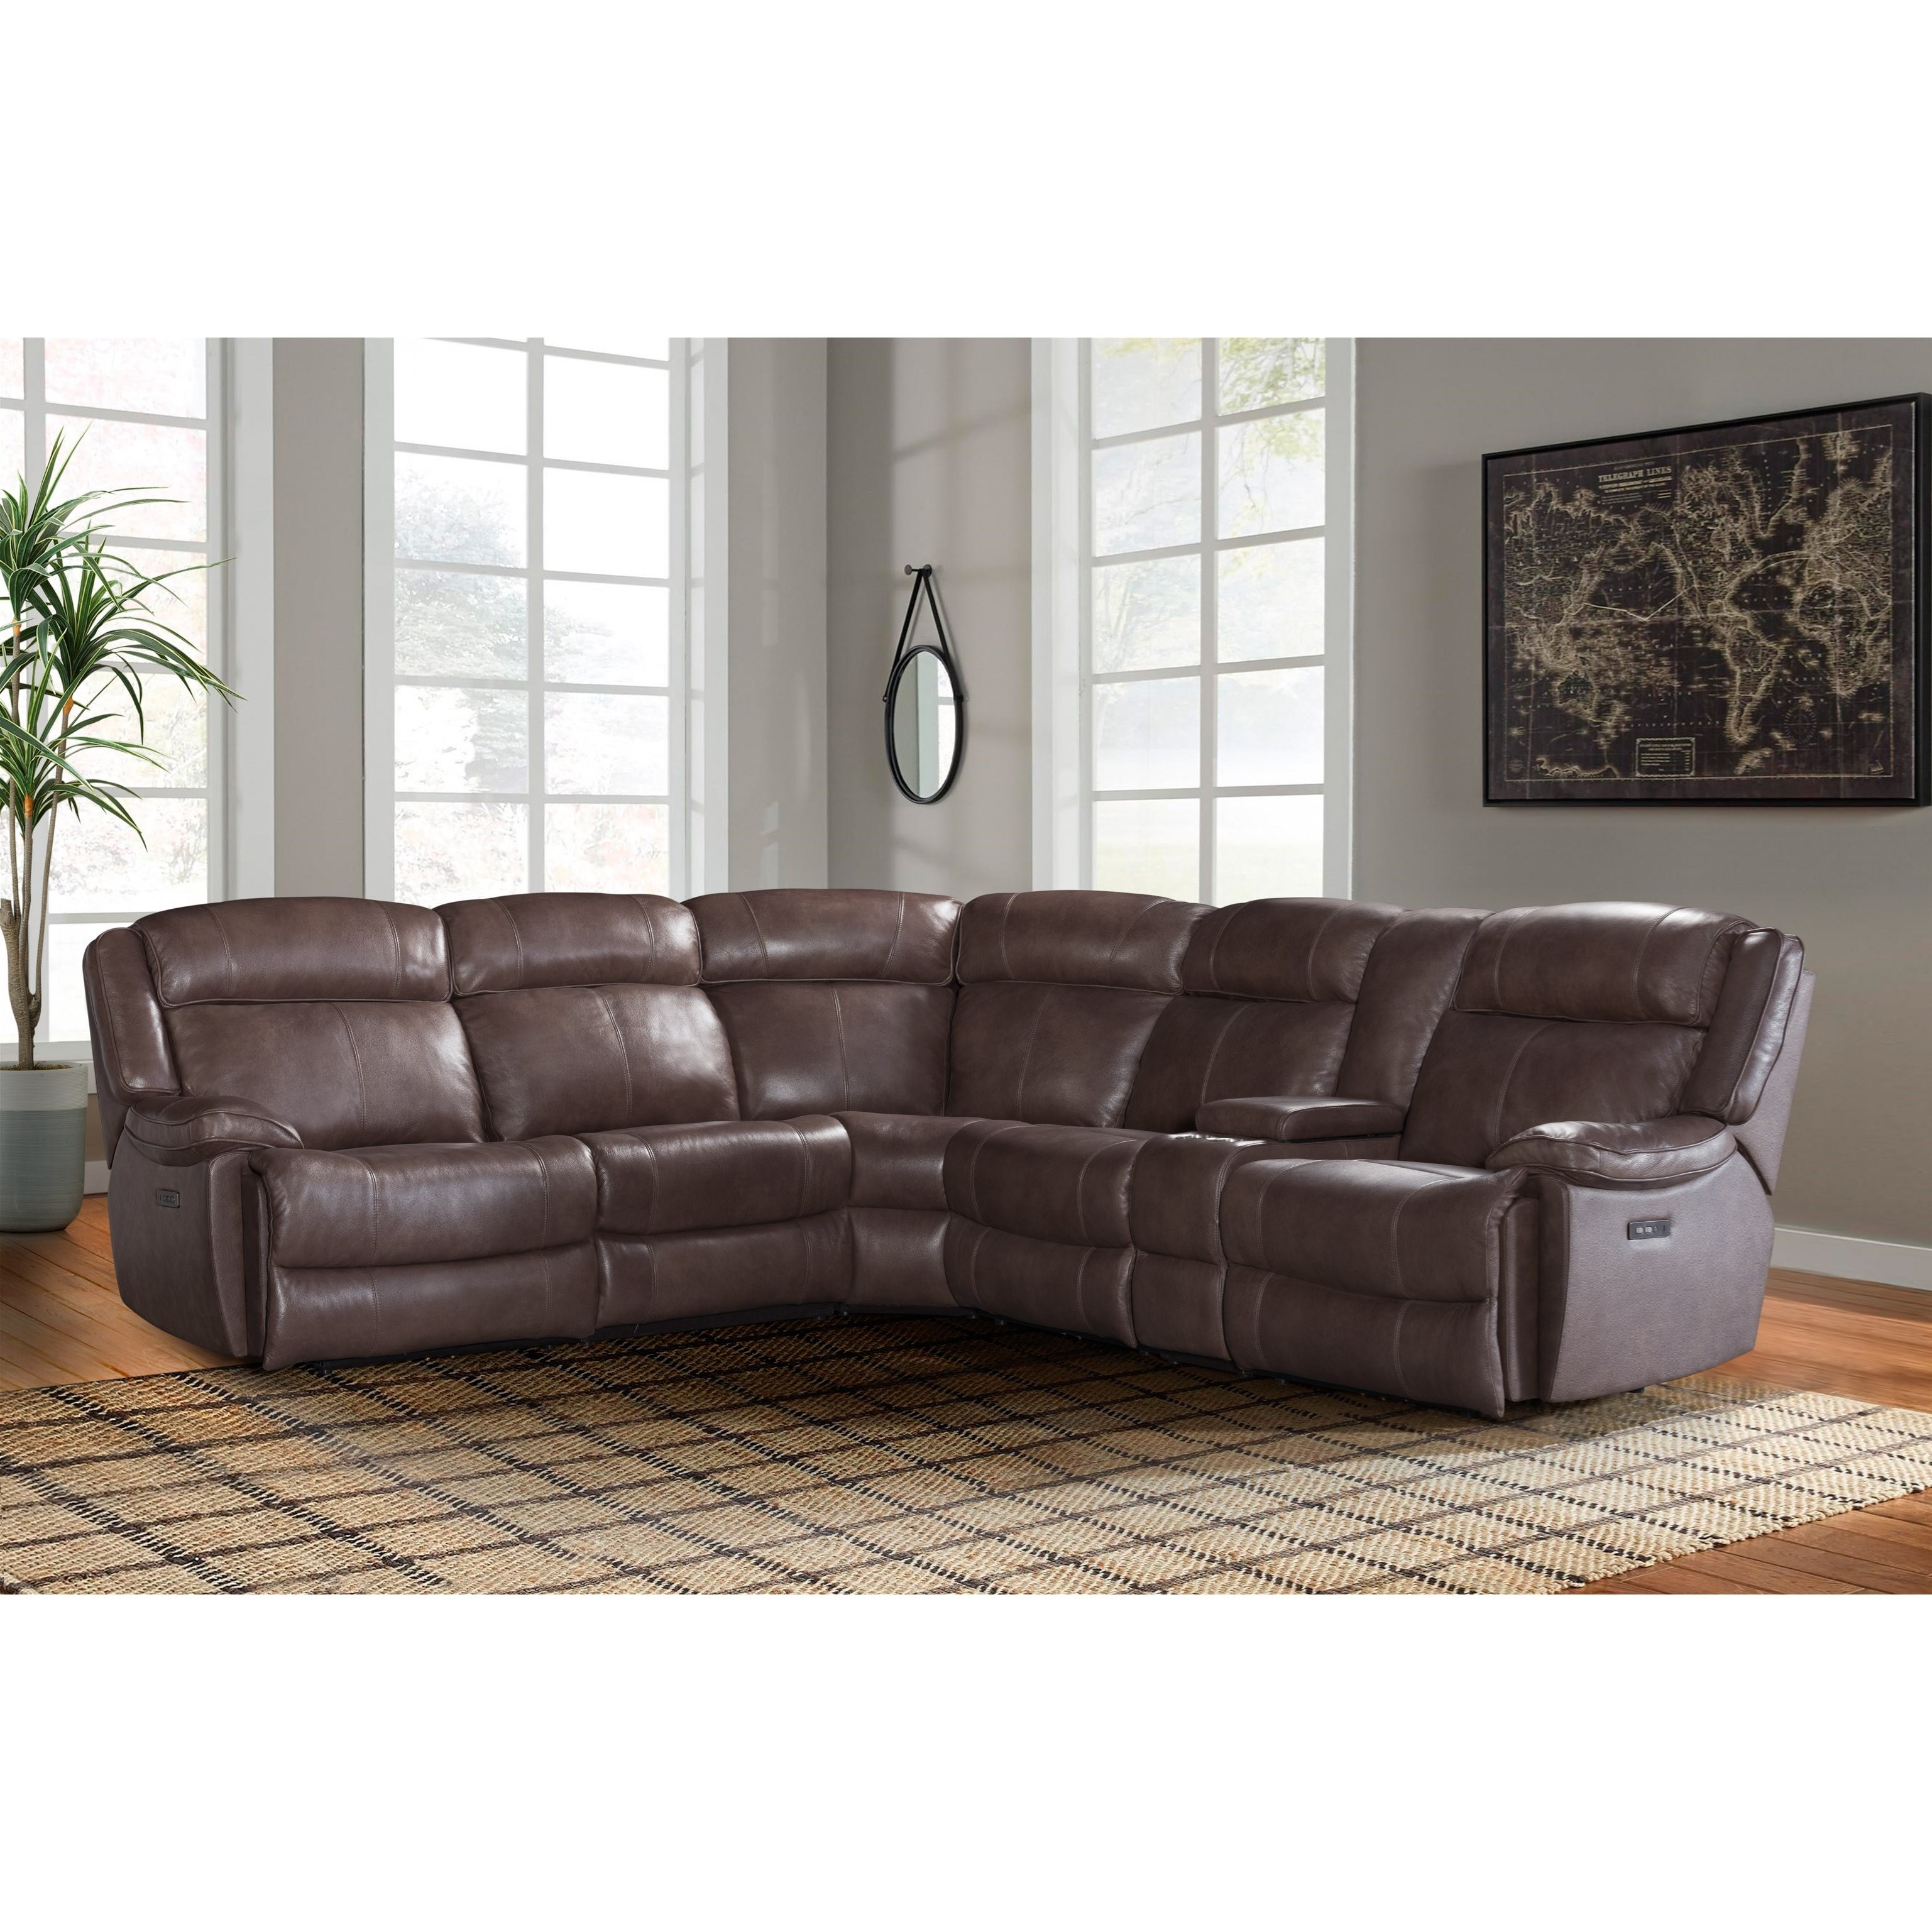 Avalon Dual Power Reclining Sectional Sofa by Intercon at Rife's Home Furniture